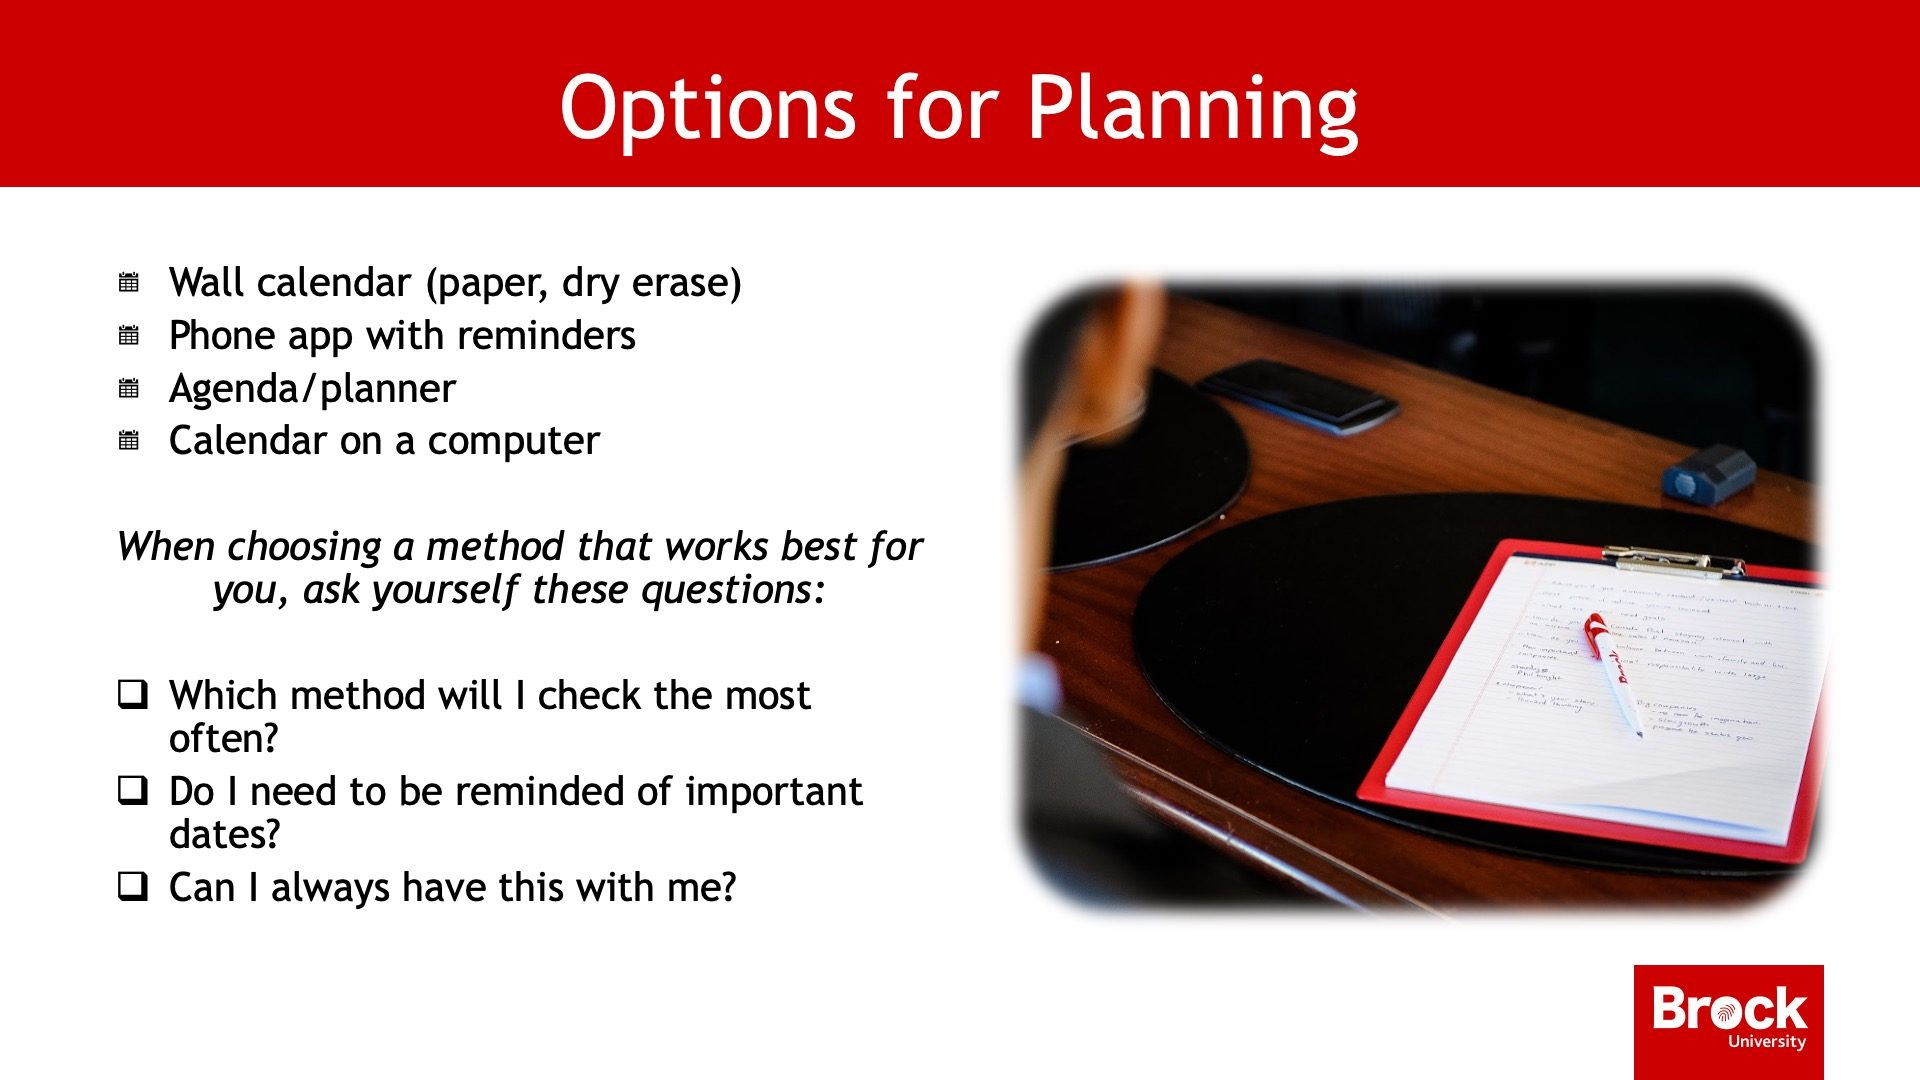 Options for planning